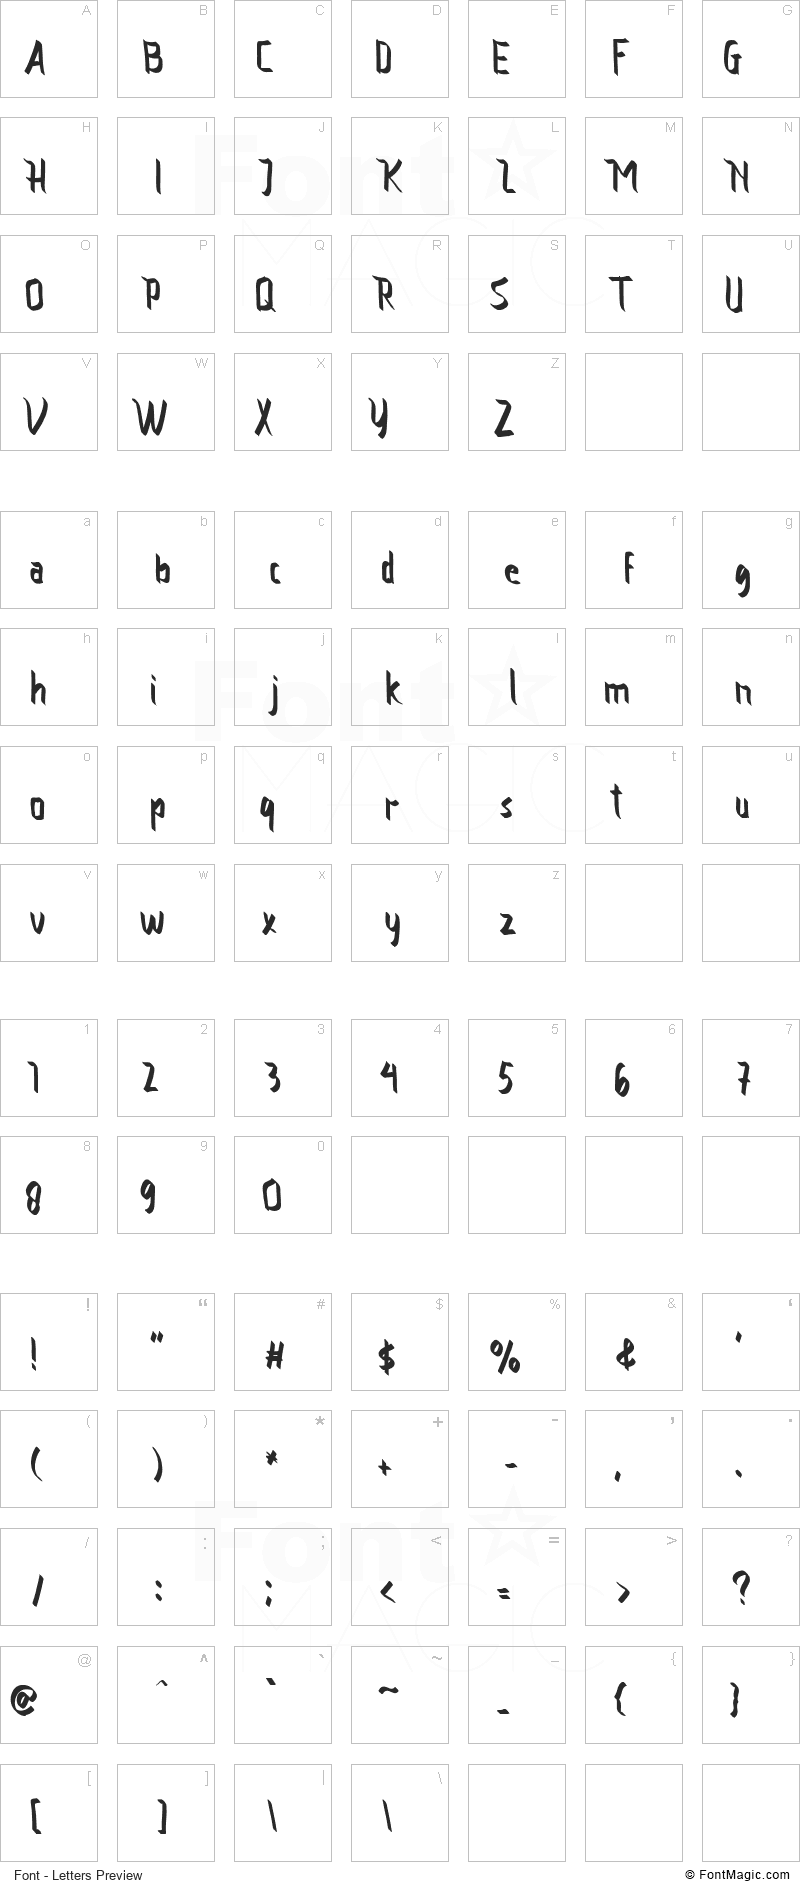 Vamfired Font - All Latters Preview Chart